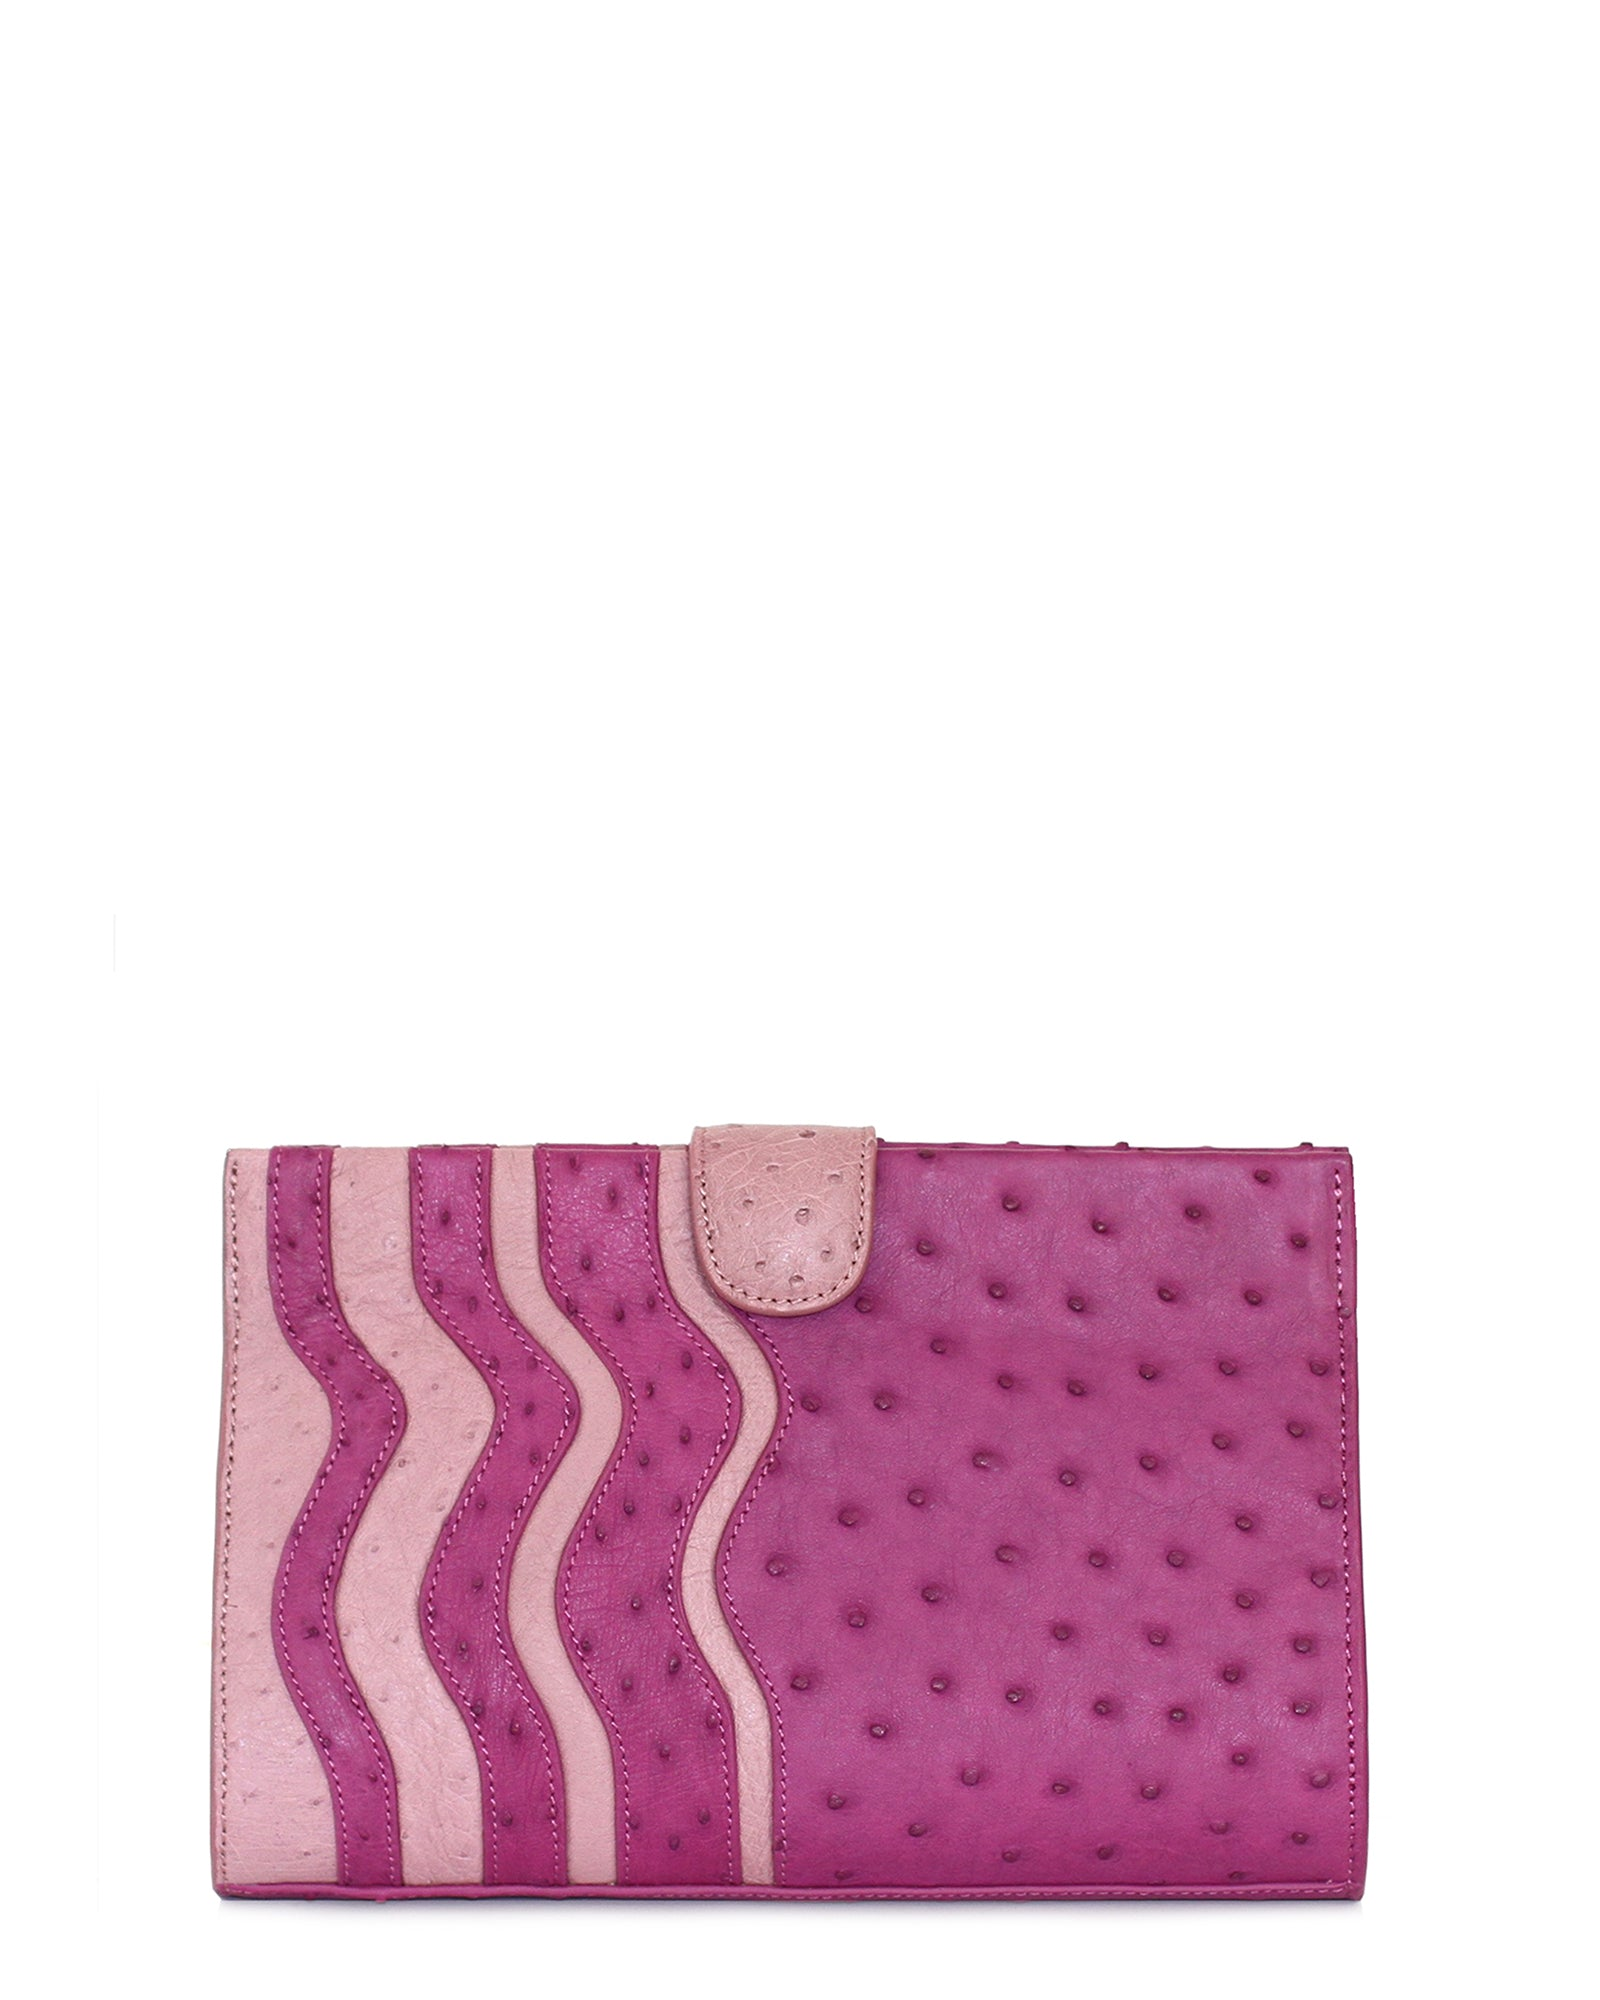 Joey Clutch Ostrich Purple & Lavender Wavy Trims Yara Bashoor YB Front (same as back) View Comes with Shoulder Chain